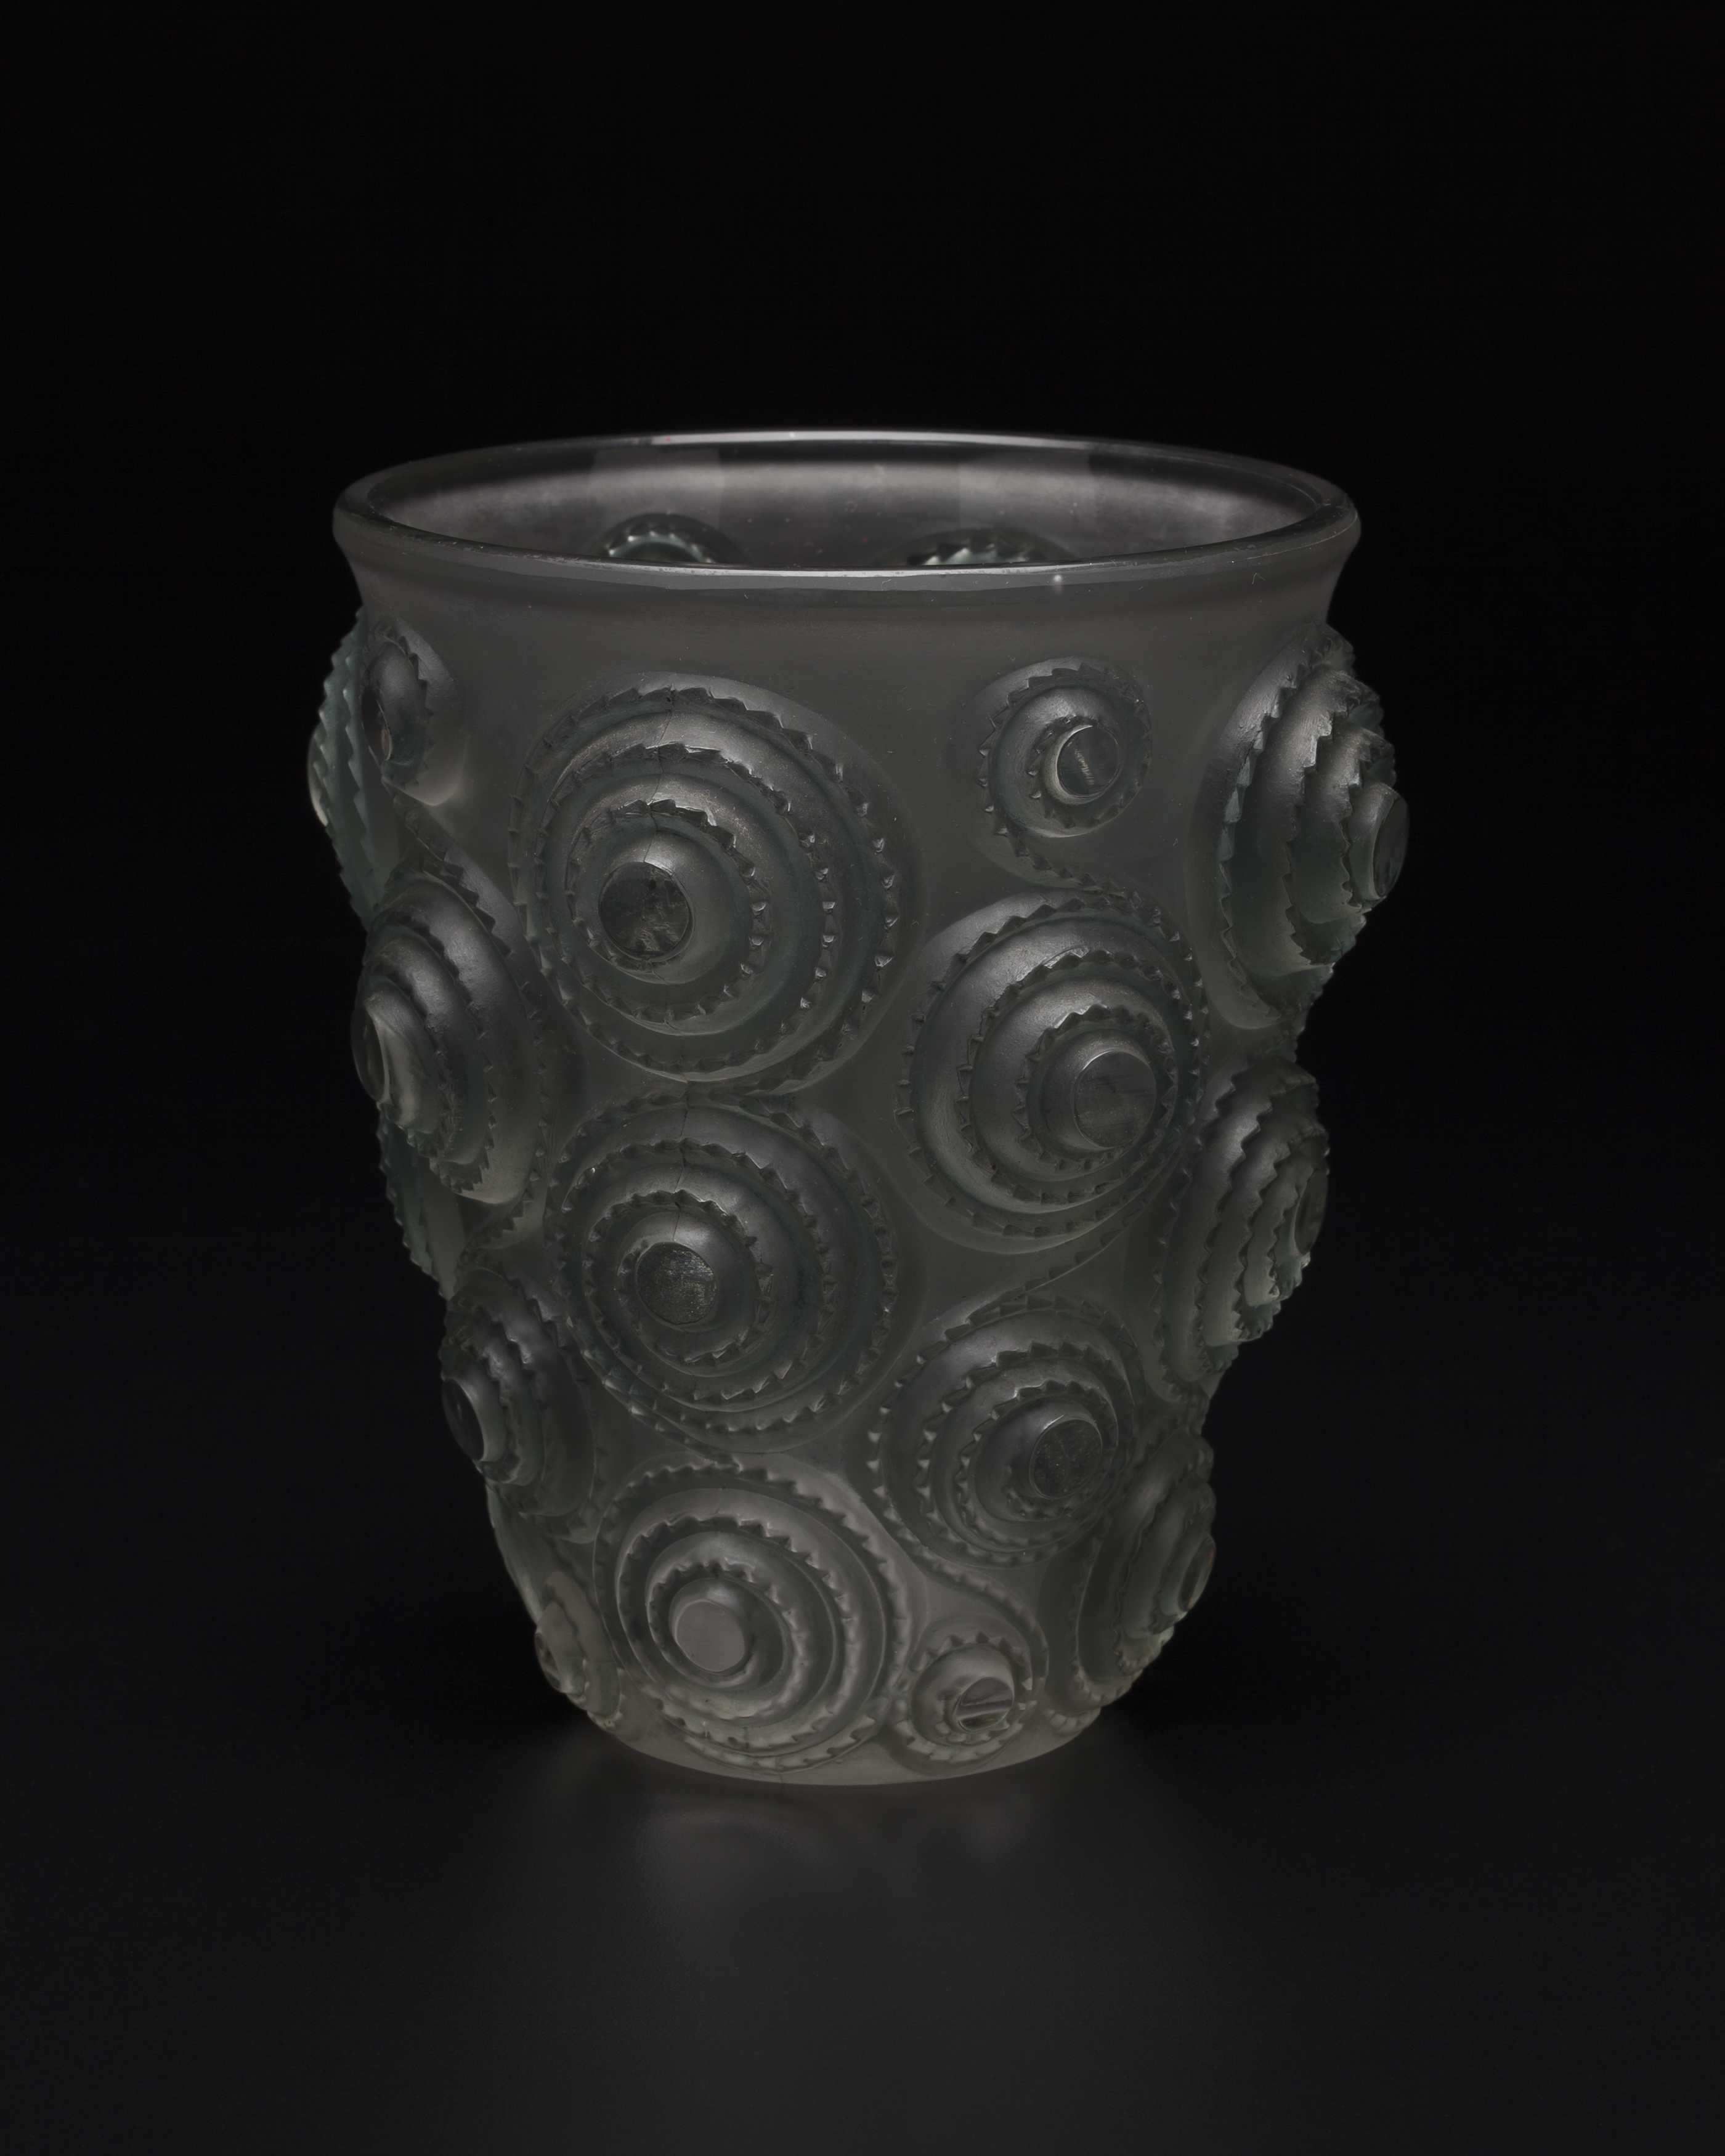 A heavy, cylindrical vase in grey glass with frosted finish, tapering towards the base from a wider rim. The bold, high-relief surface has alternating vertical rows of interlinked notched spiral-shaped forms.